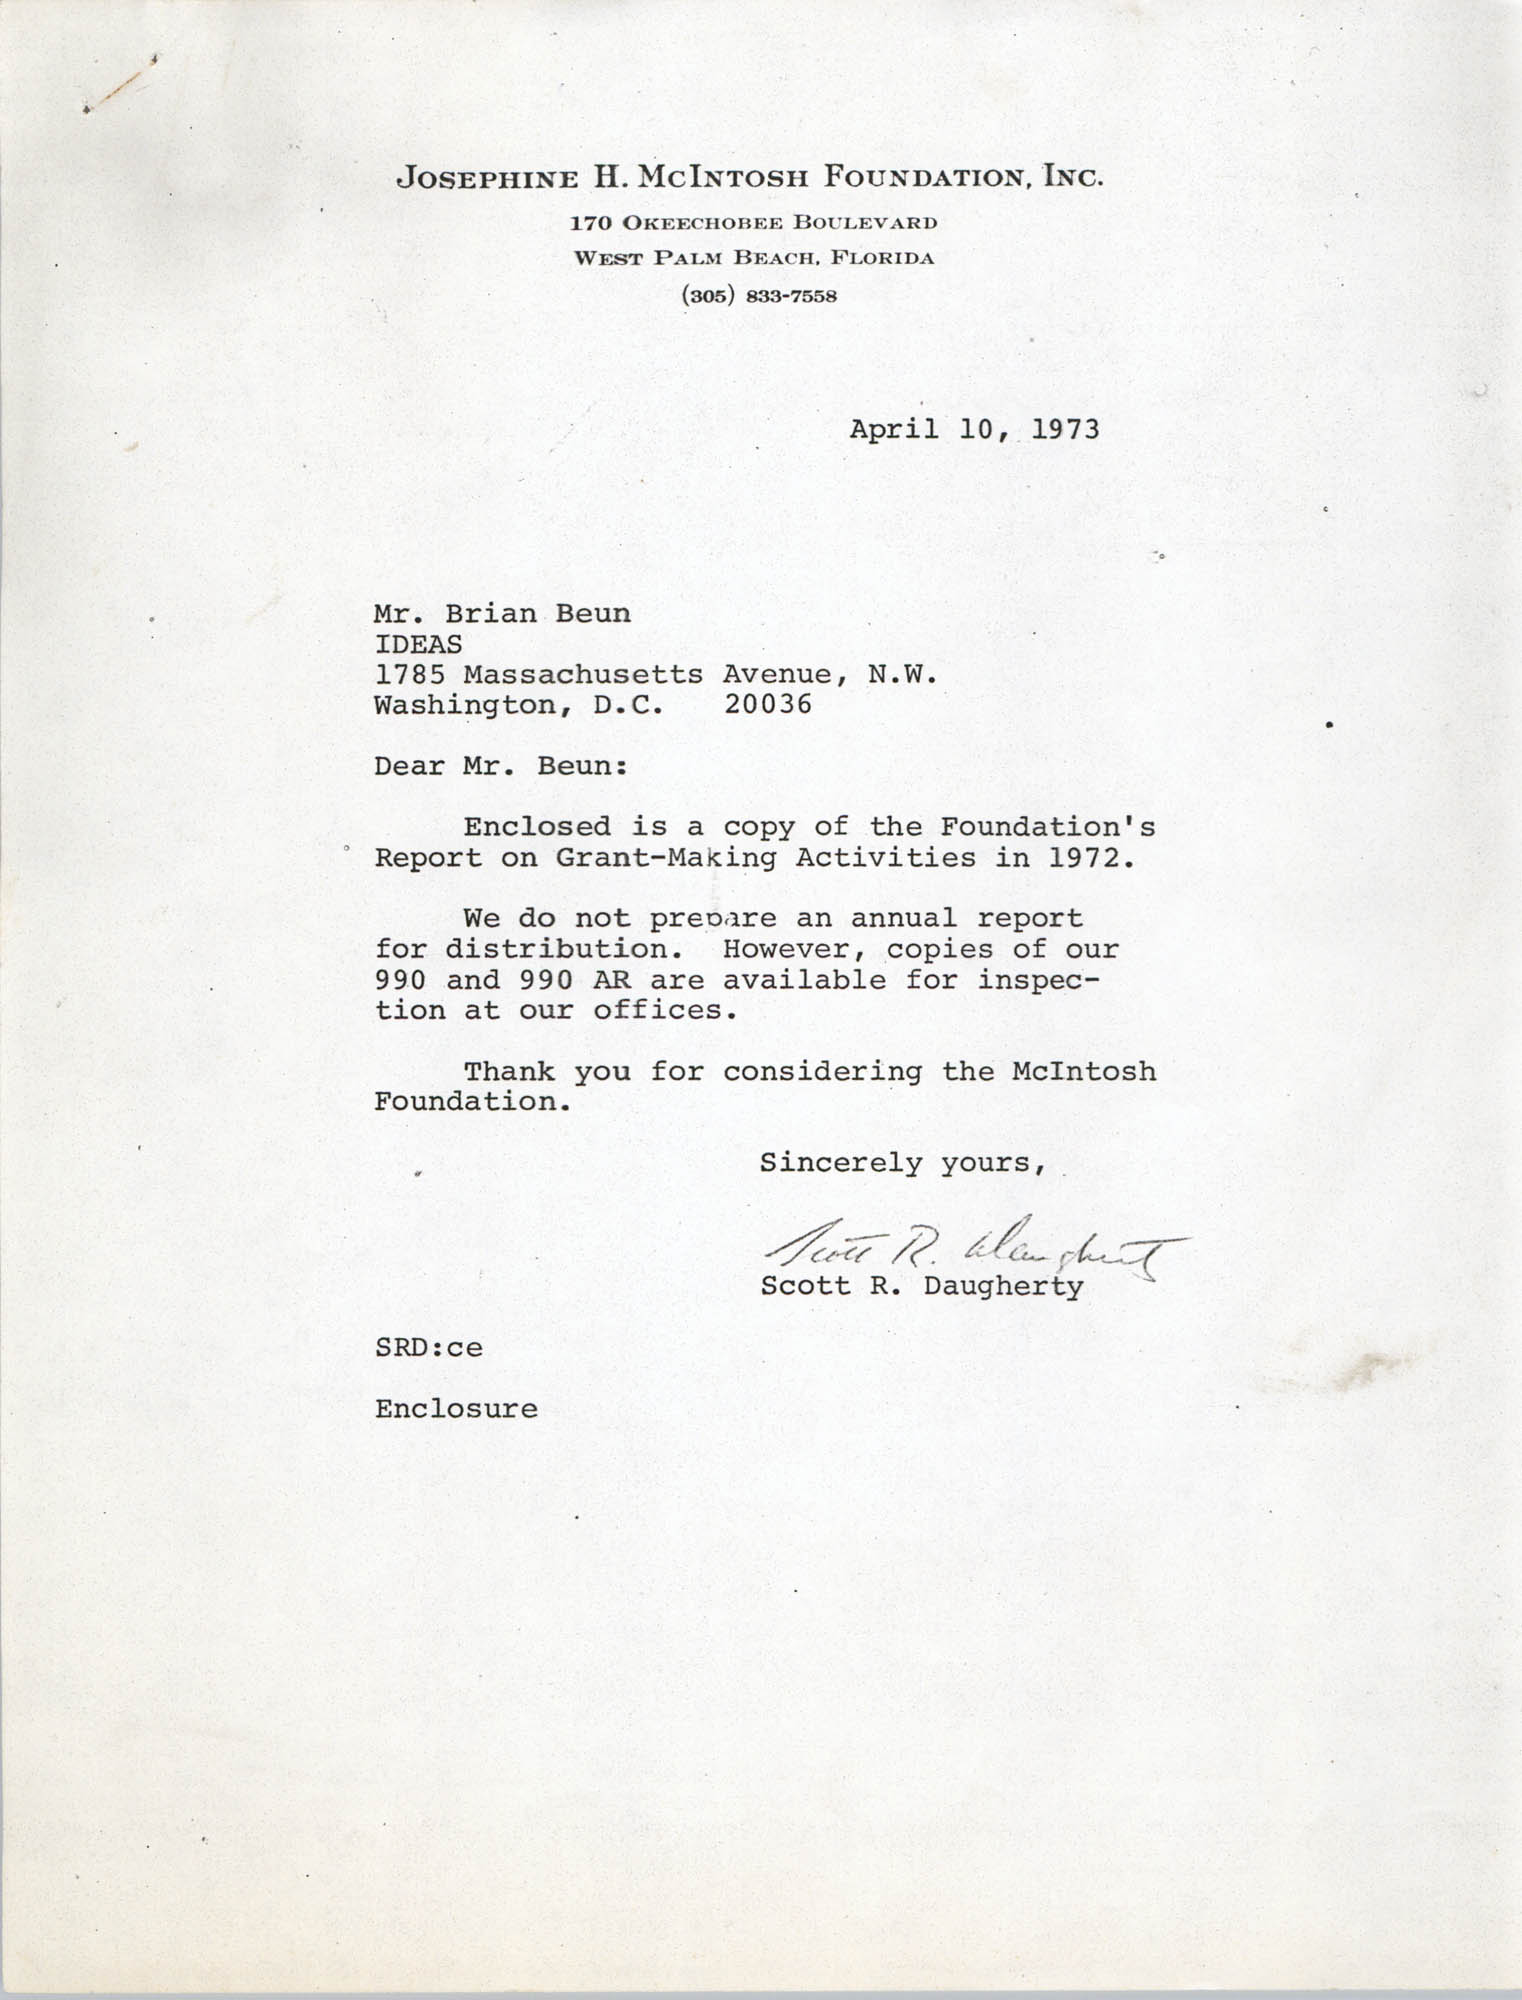 Letter from Scott Daugherty to Brian Beun, April 10, 1973